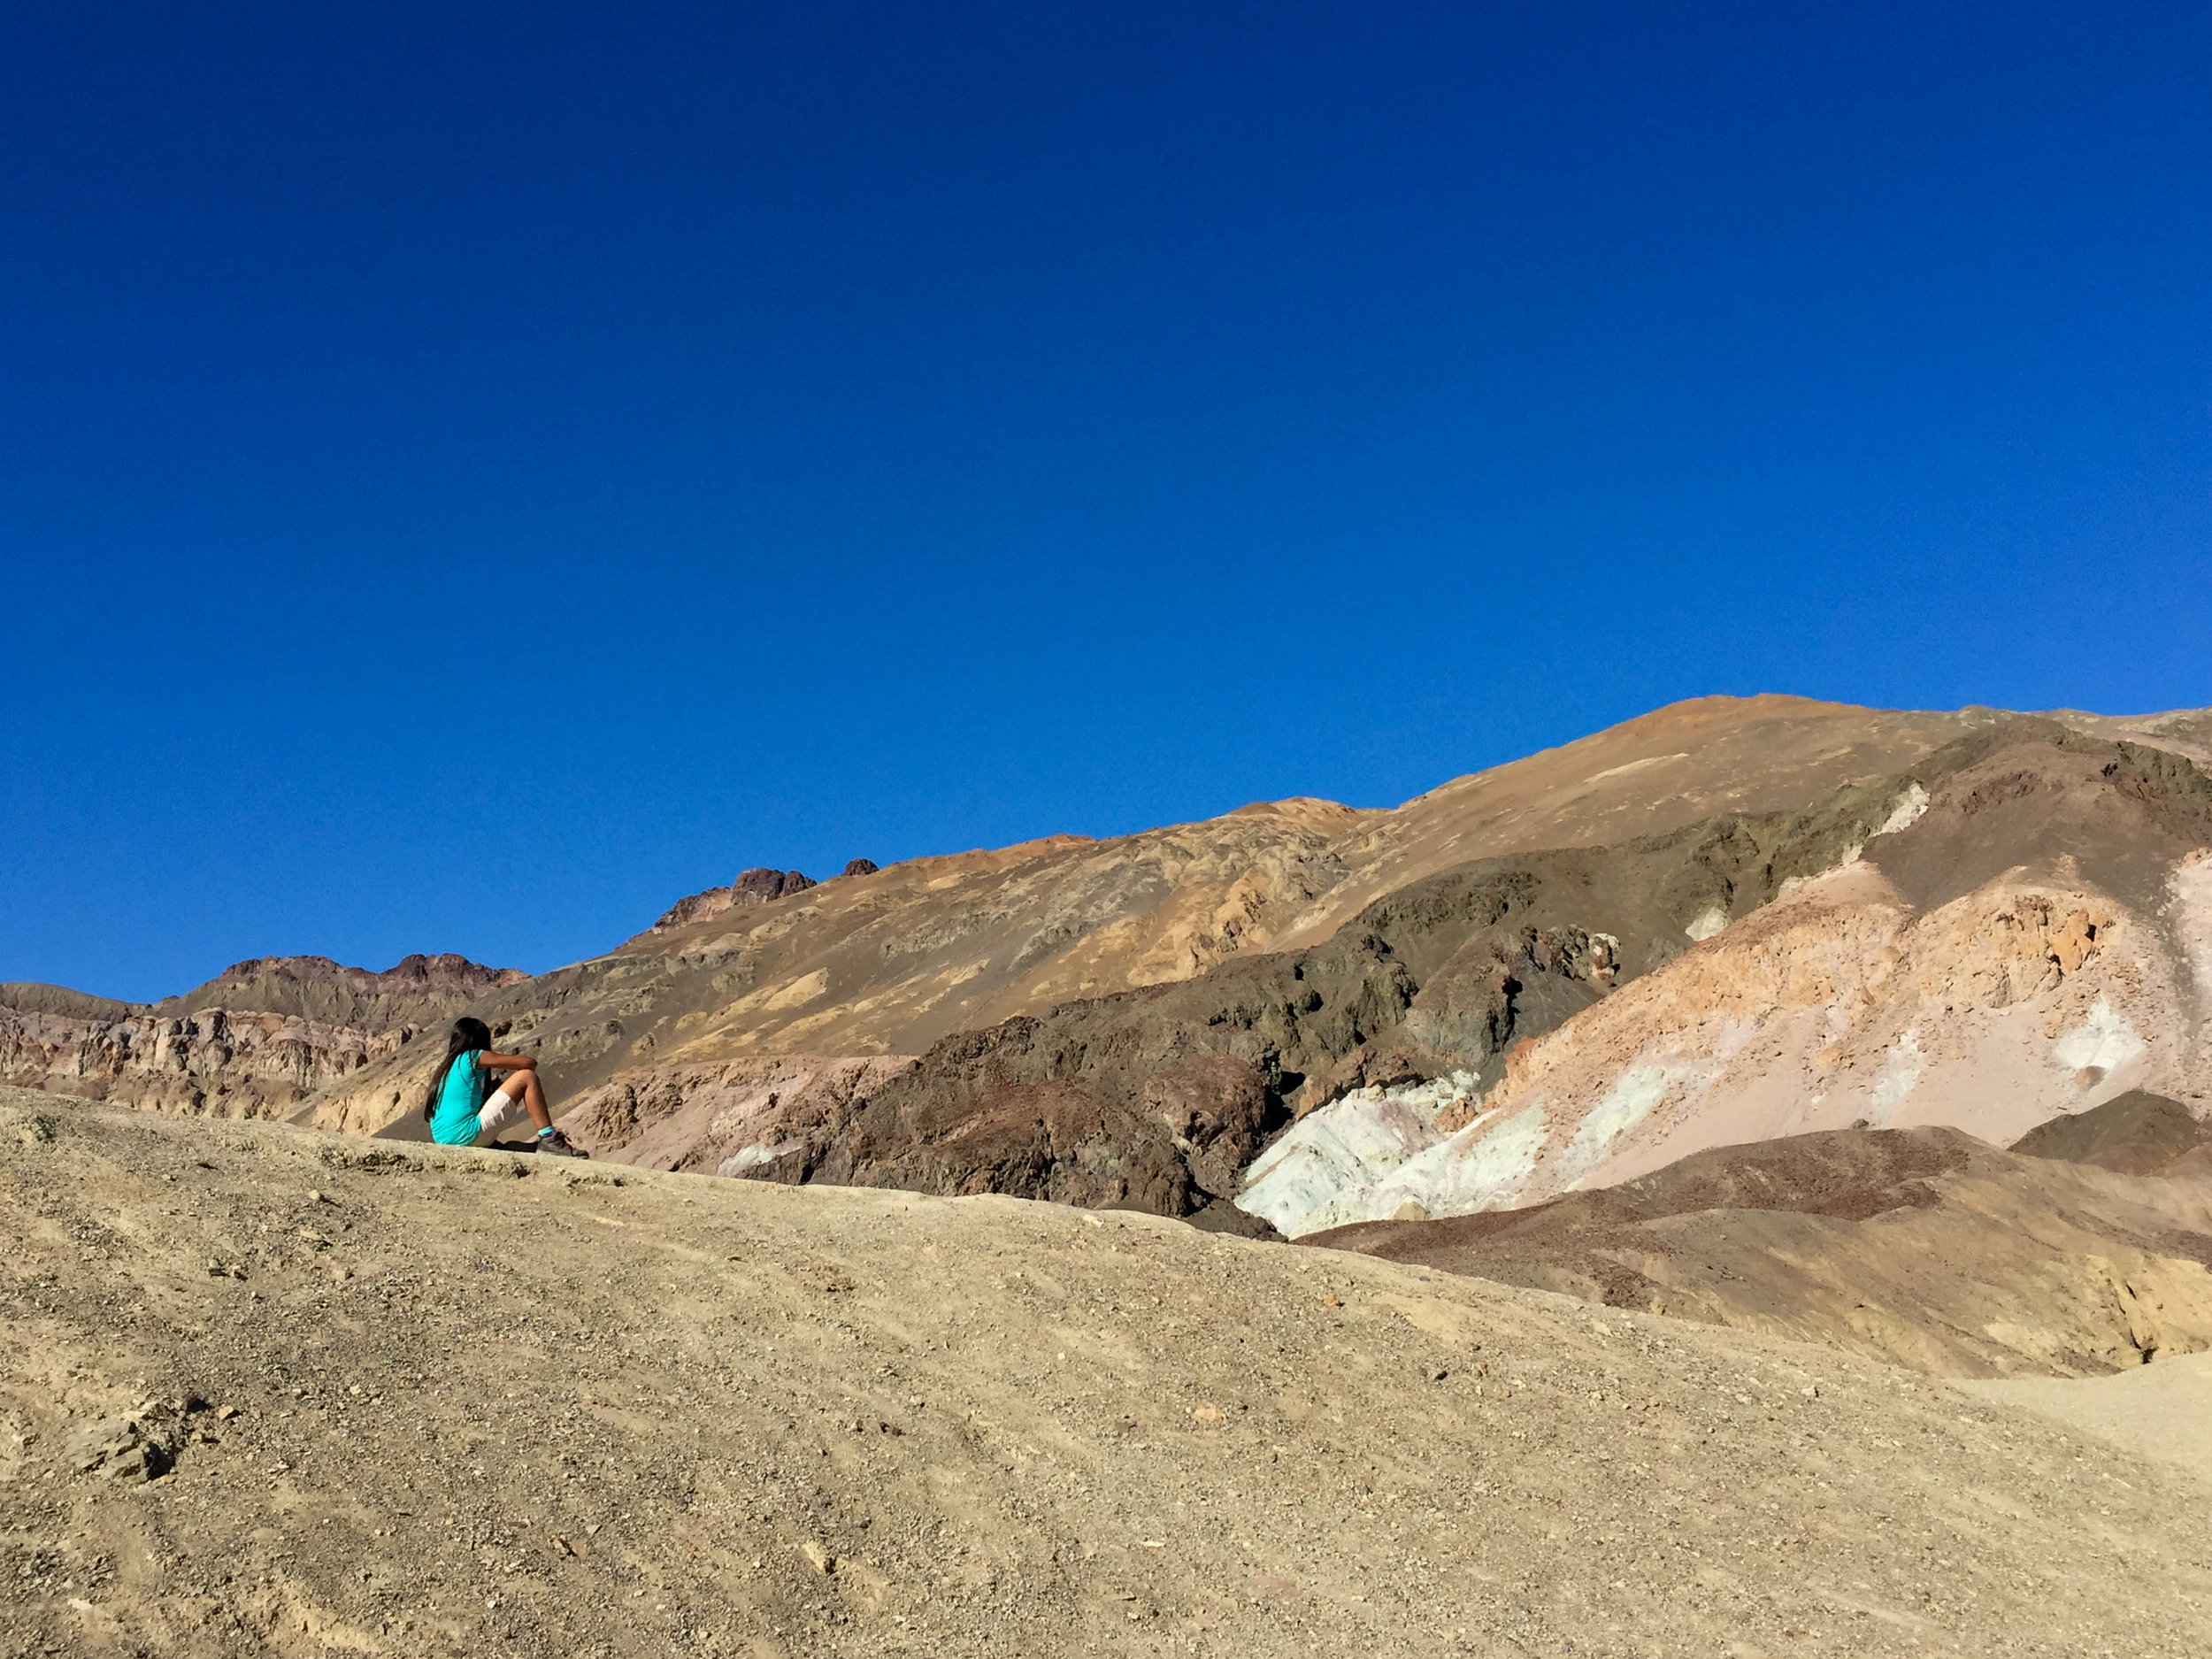 A girl surveying the Artist's Palette -- a part of the Black Mountains where rocks are colored by oxidized metals -- in 2016.